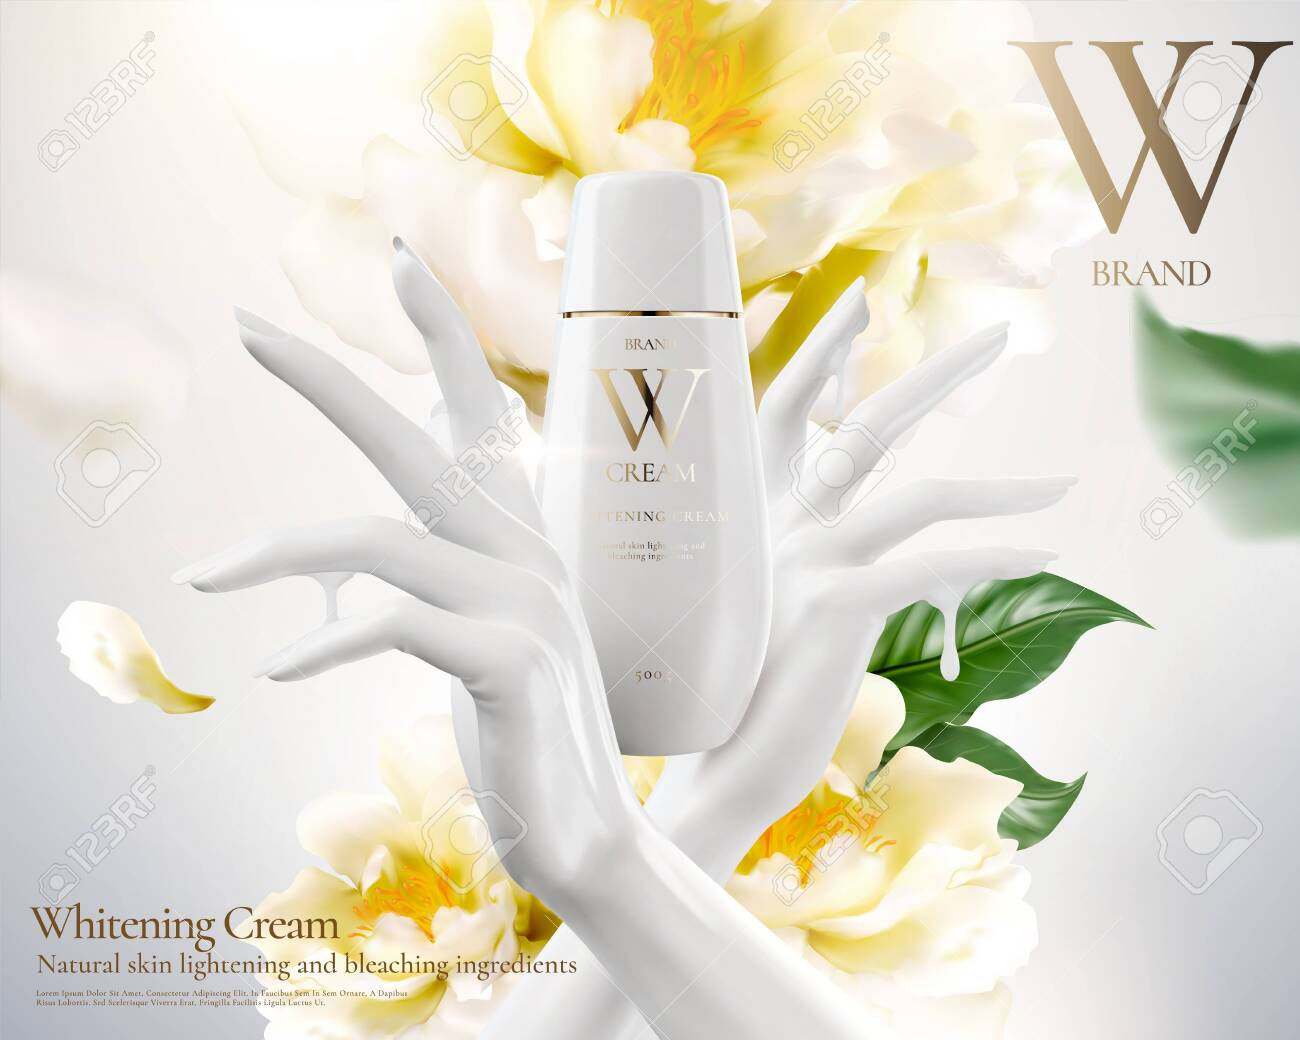 Whitening cream ads with white hand and flowers in 3d illustration - 125189795